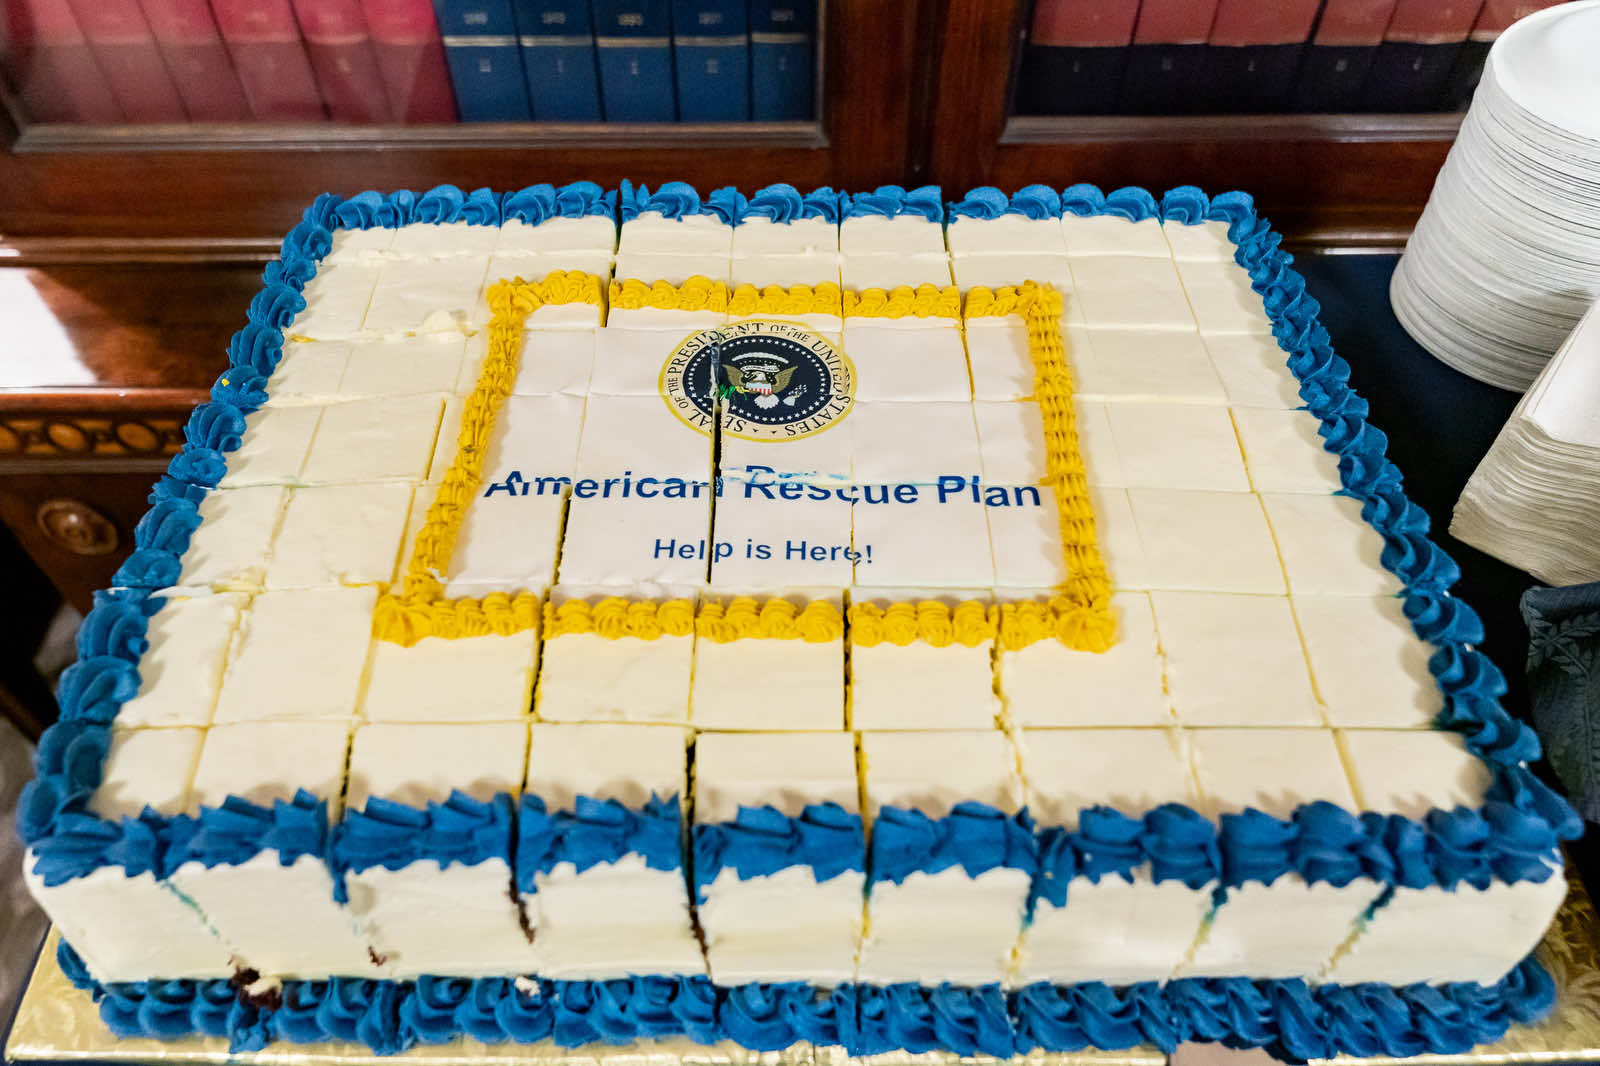 Celebrating the signing of the American Rescue Plan (Carlos Fyfe/White House/Flickr)